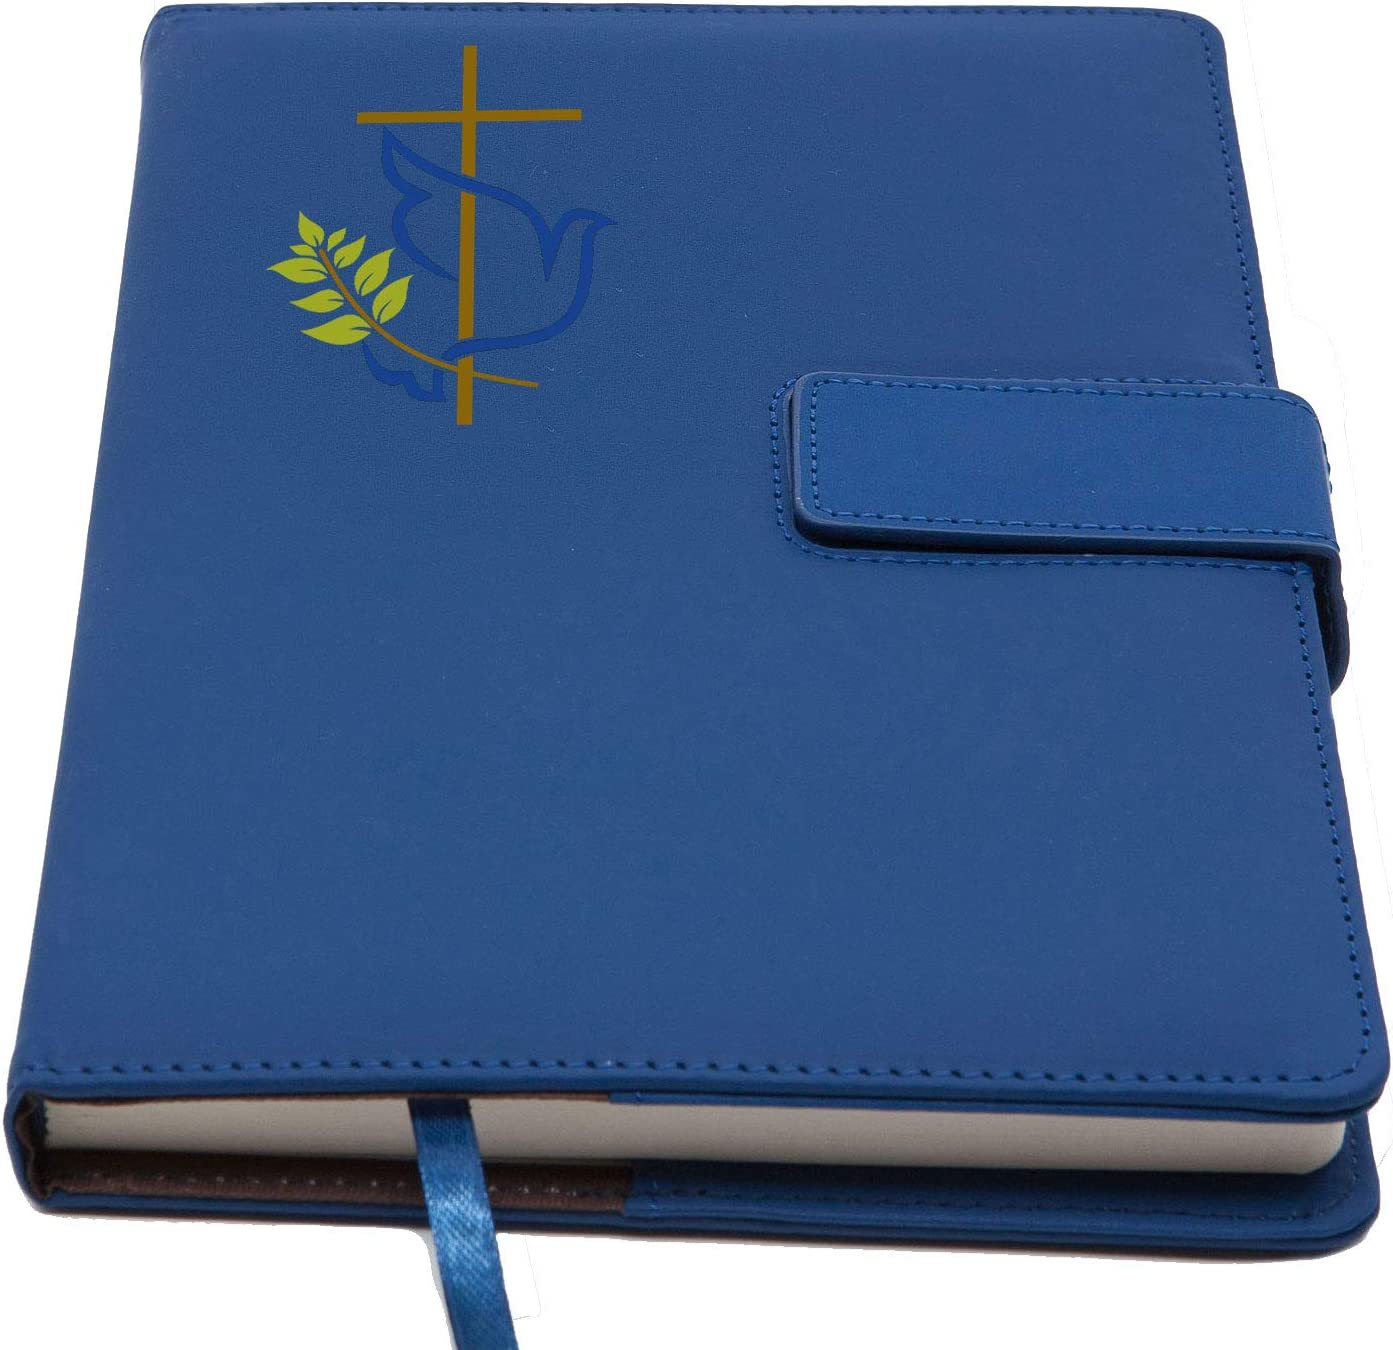 The Peace Dove Refillable Writing Journal | Magnetic Faux Leather Journal, 5 x 8 Inch, 200 Lined Pages Travel Personal Diary, Quality Notebooks and Journals for Men and Women from The Amazing Office